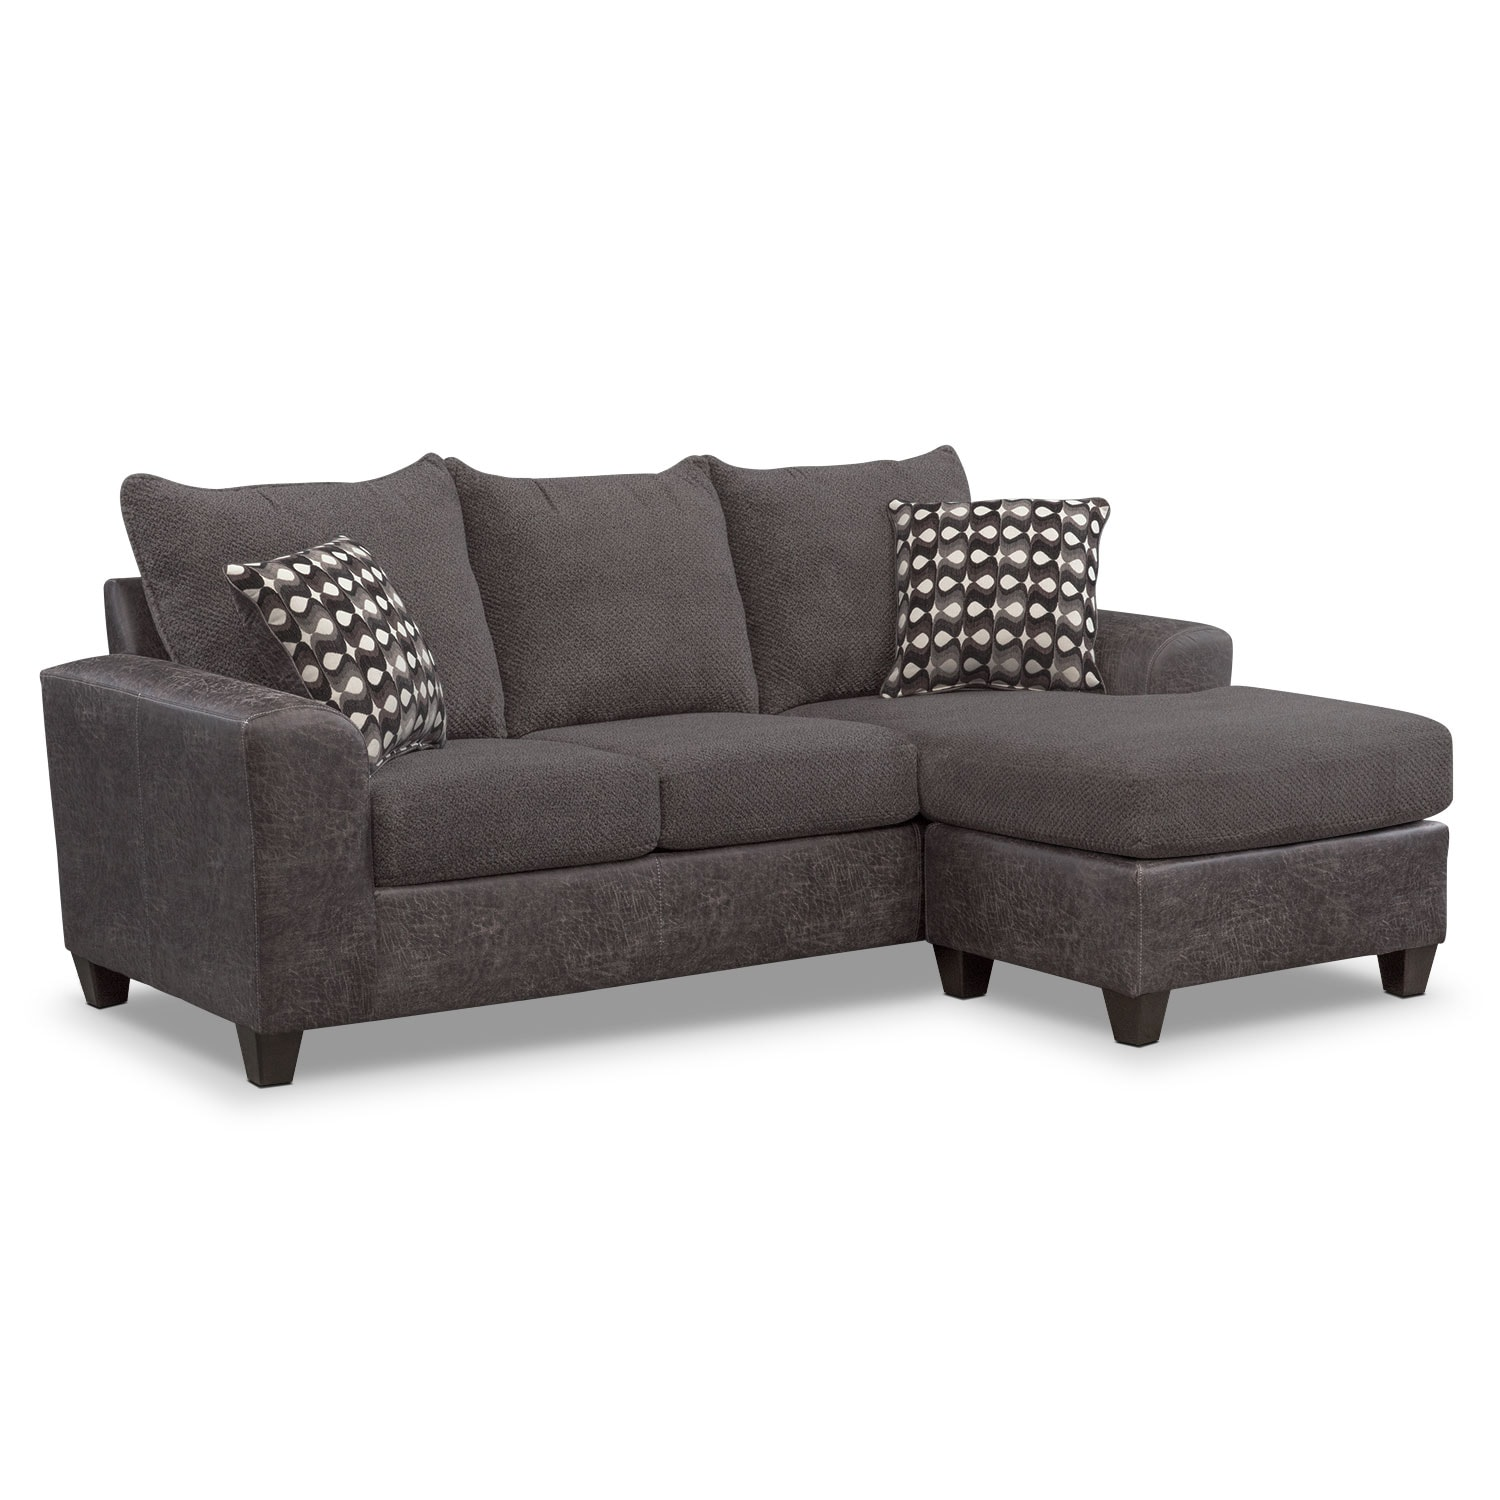 Brando Sofa with Chaise - Smoke  sc 1 st  Value City Furniture : chaise sofa chair - Sectionals, Sofas & Couches